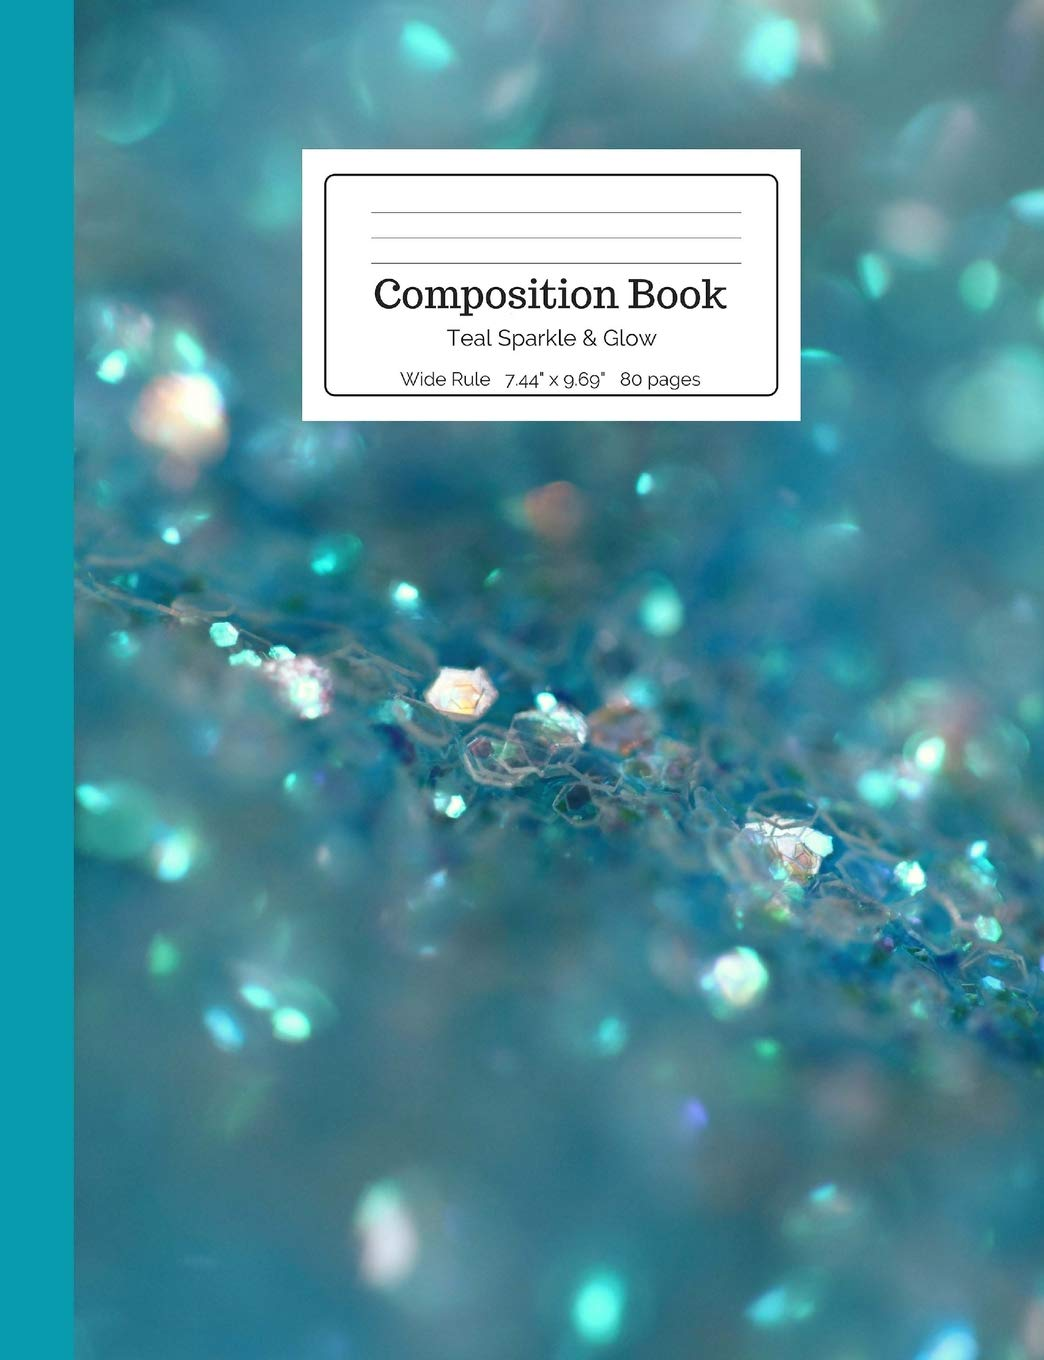 Composition Book Teal Sparkle & Glow: Wide Ruled Ruled Notebook in Turquoise Sea Green Tropical Ocean Blue Silver Sparkly for Kids, Middle, High School Students, Teachers, Homeschooling ebook